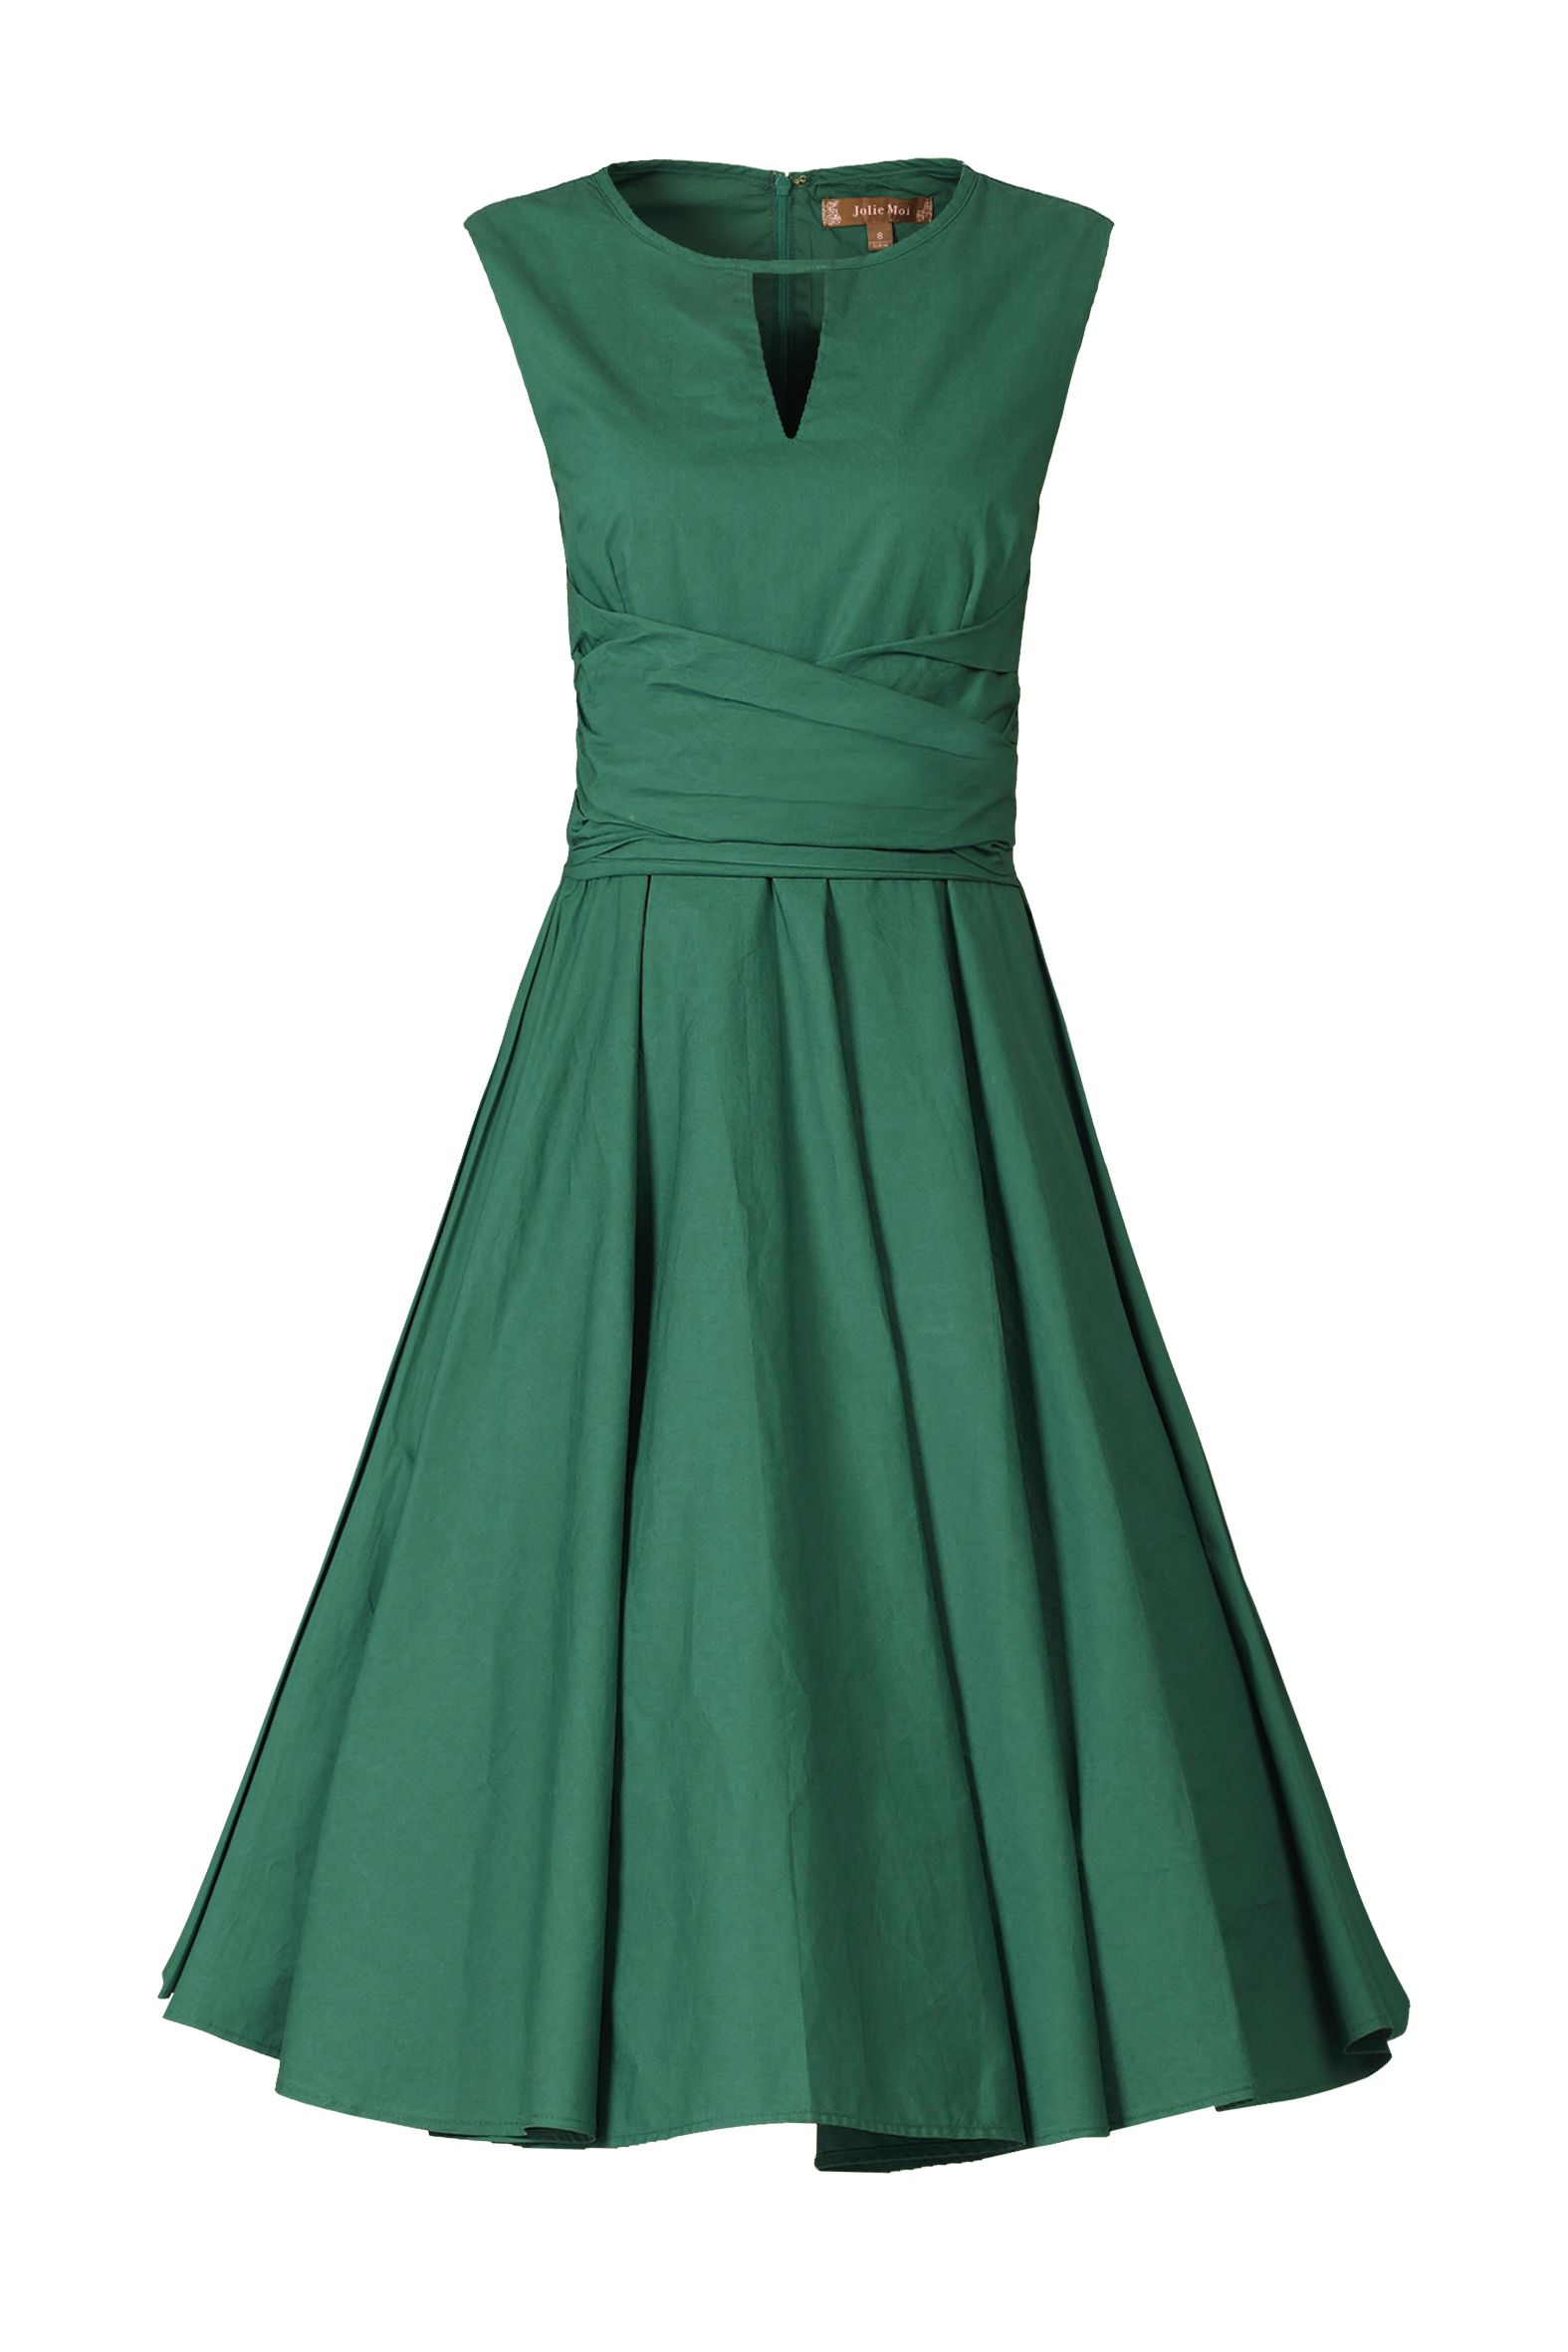 Jolie Moi Keyhole NeckLine 50s Dress, Dark Green